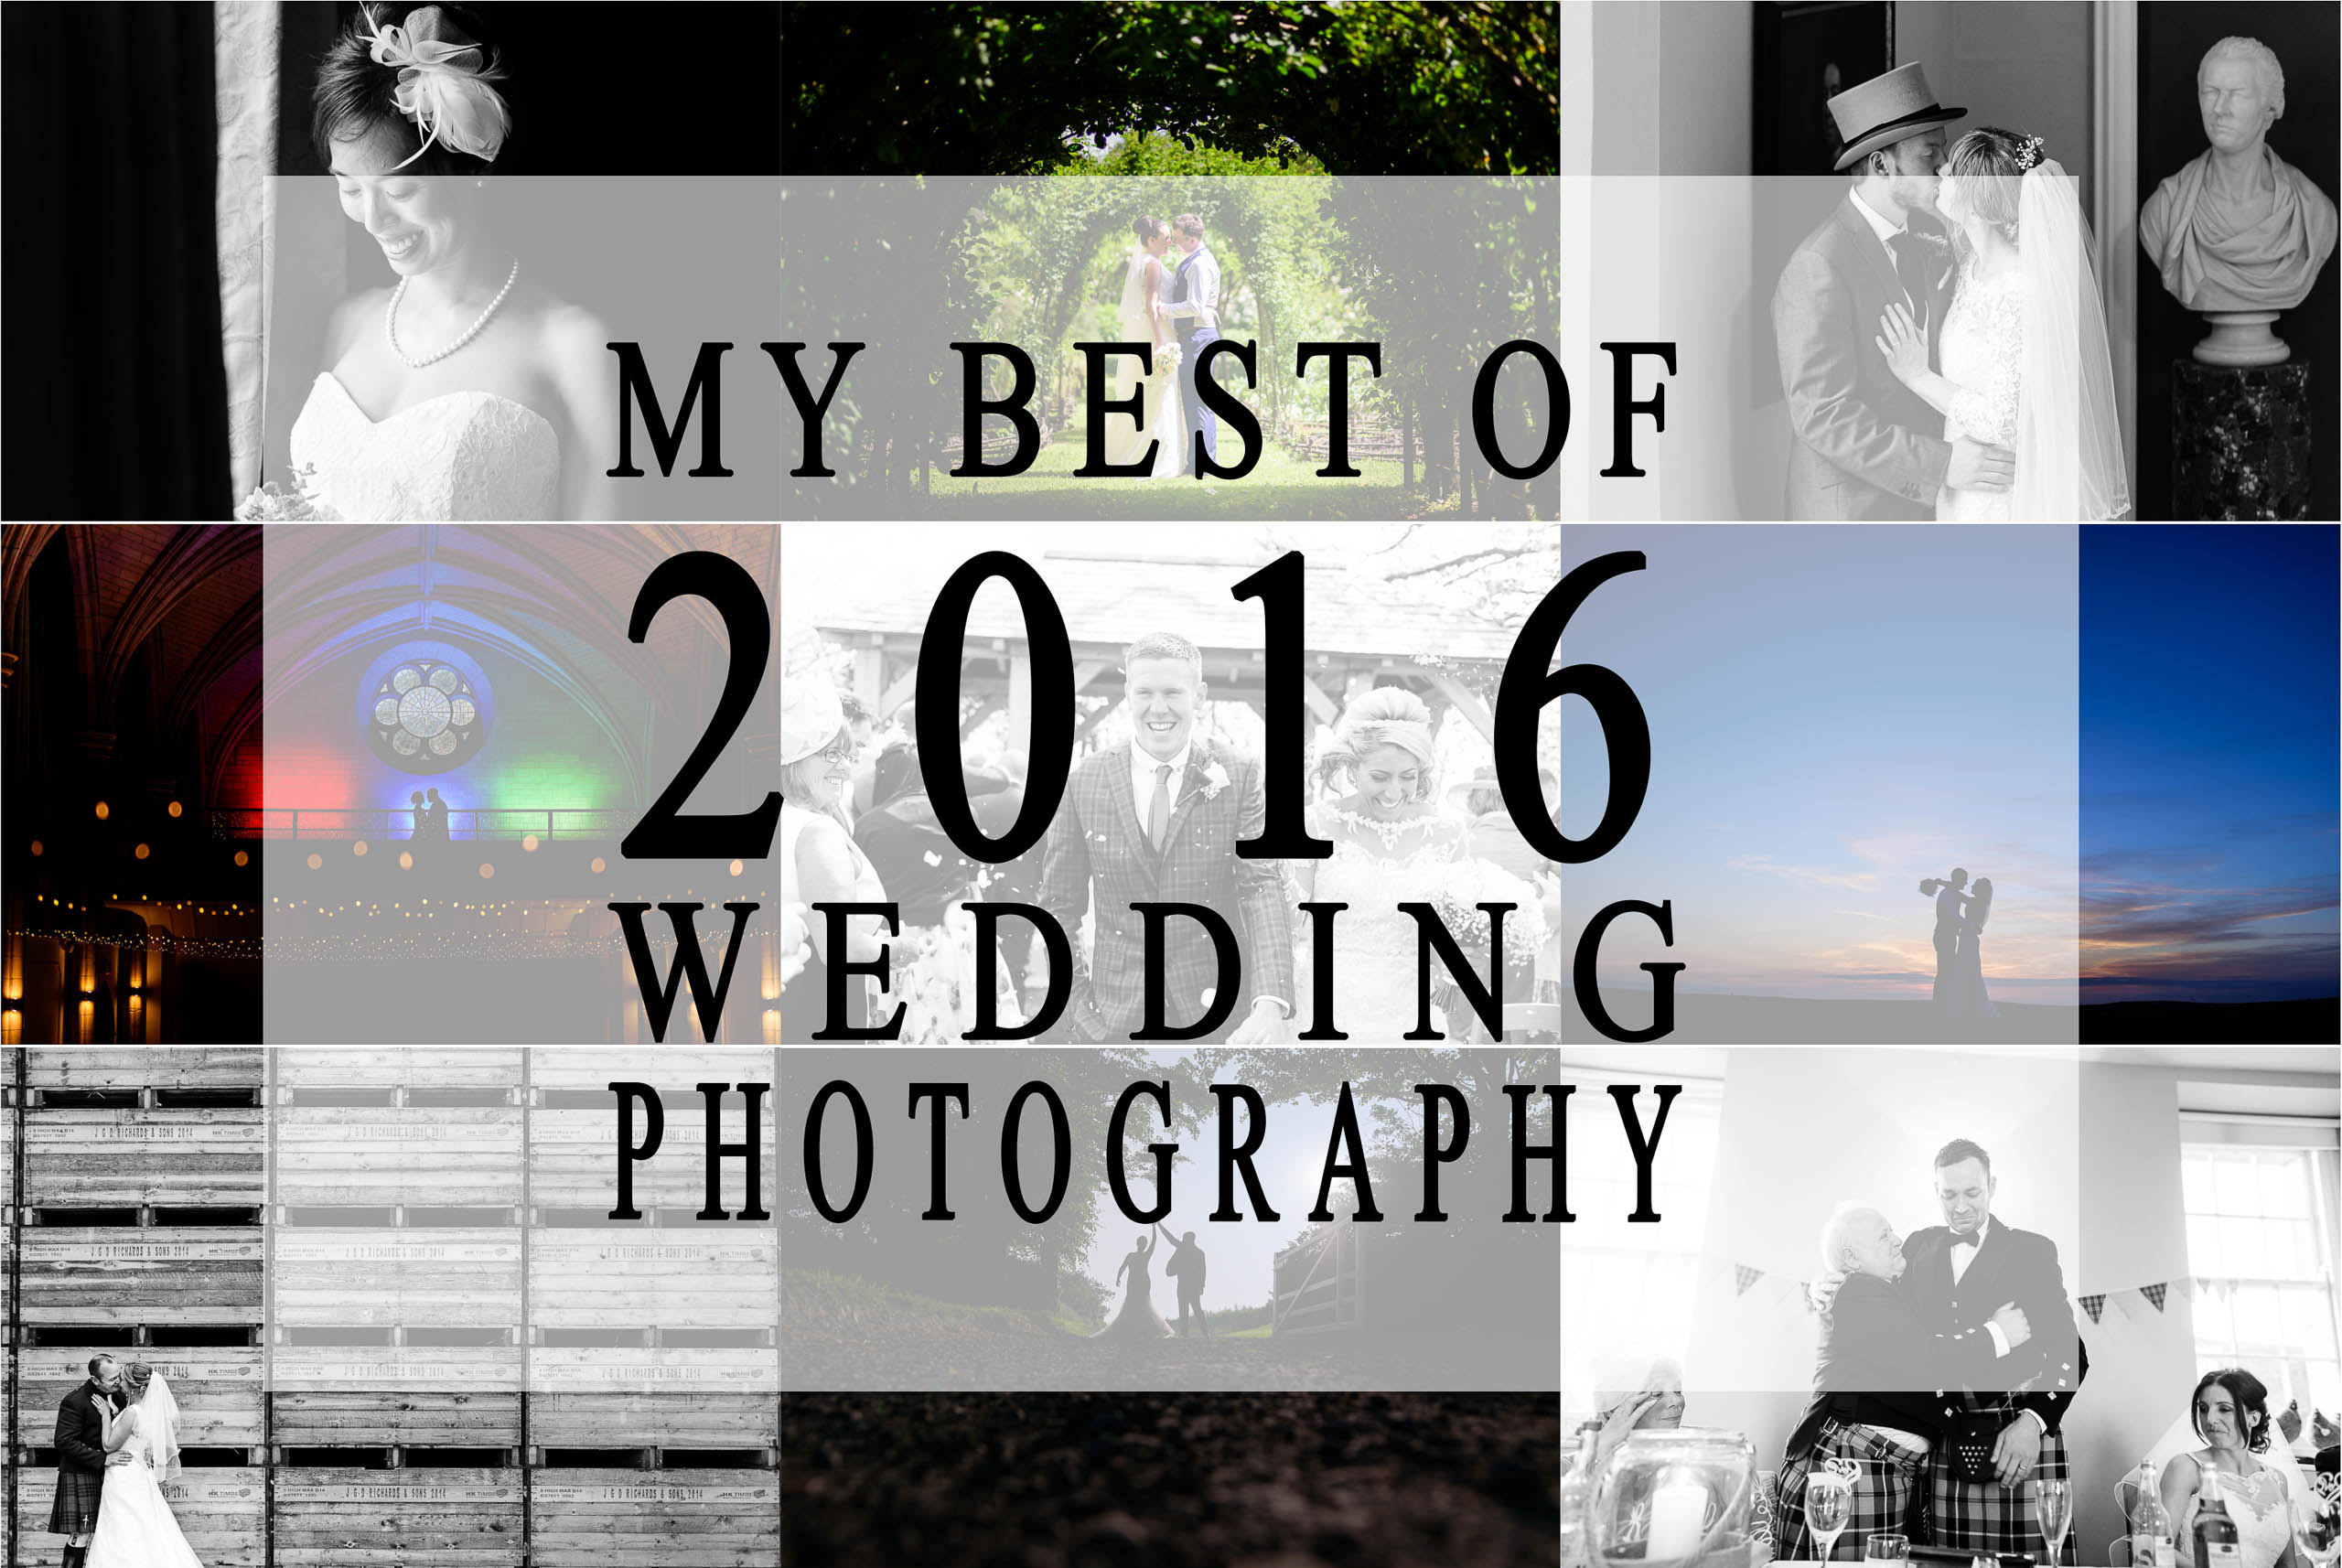 Best of 2016 wedding photography 1